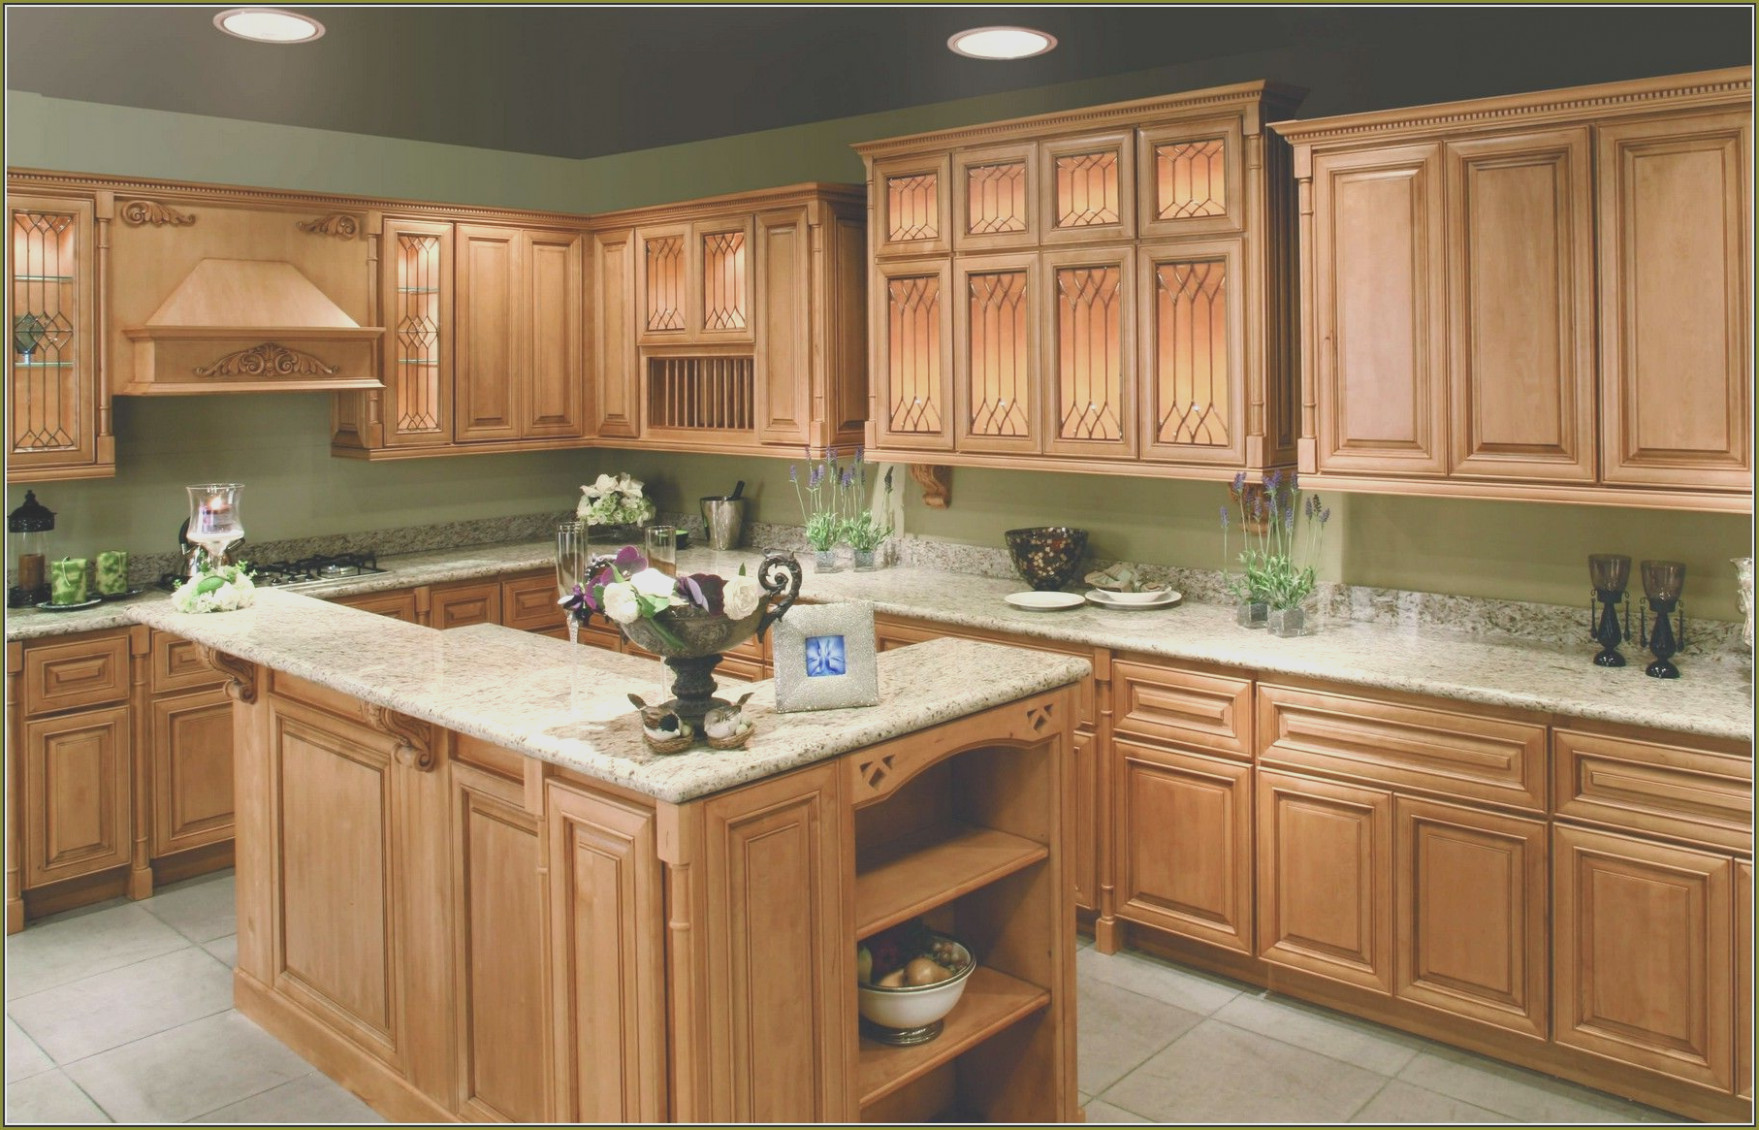 Maple Kitchen Cabinets and Wall Color